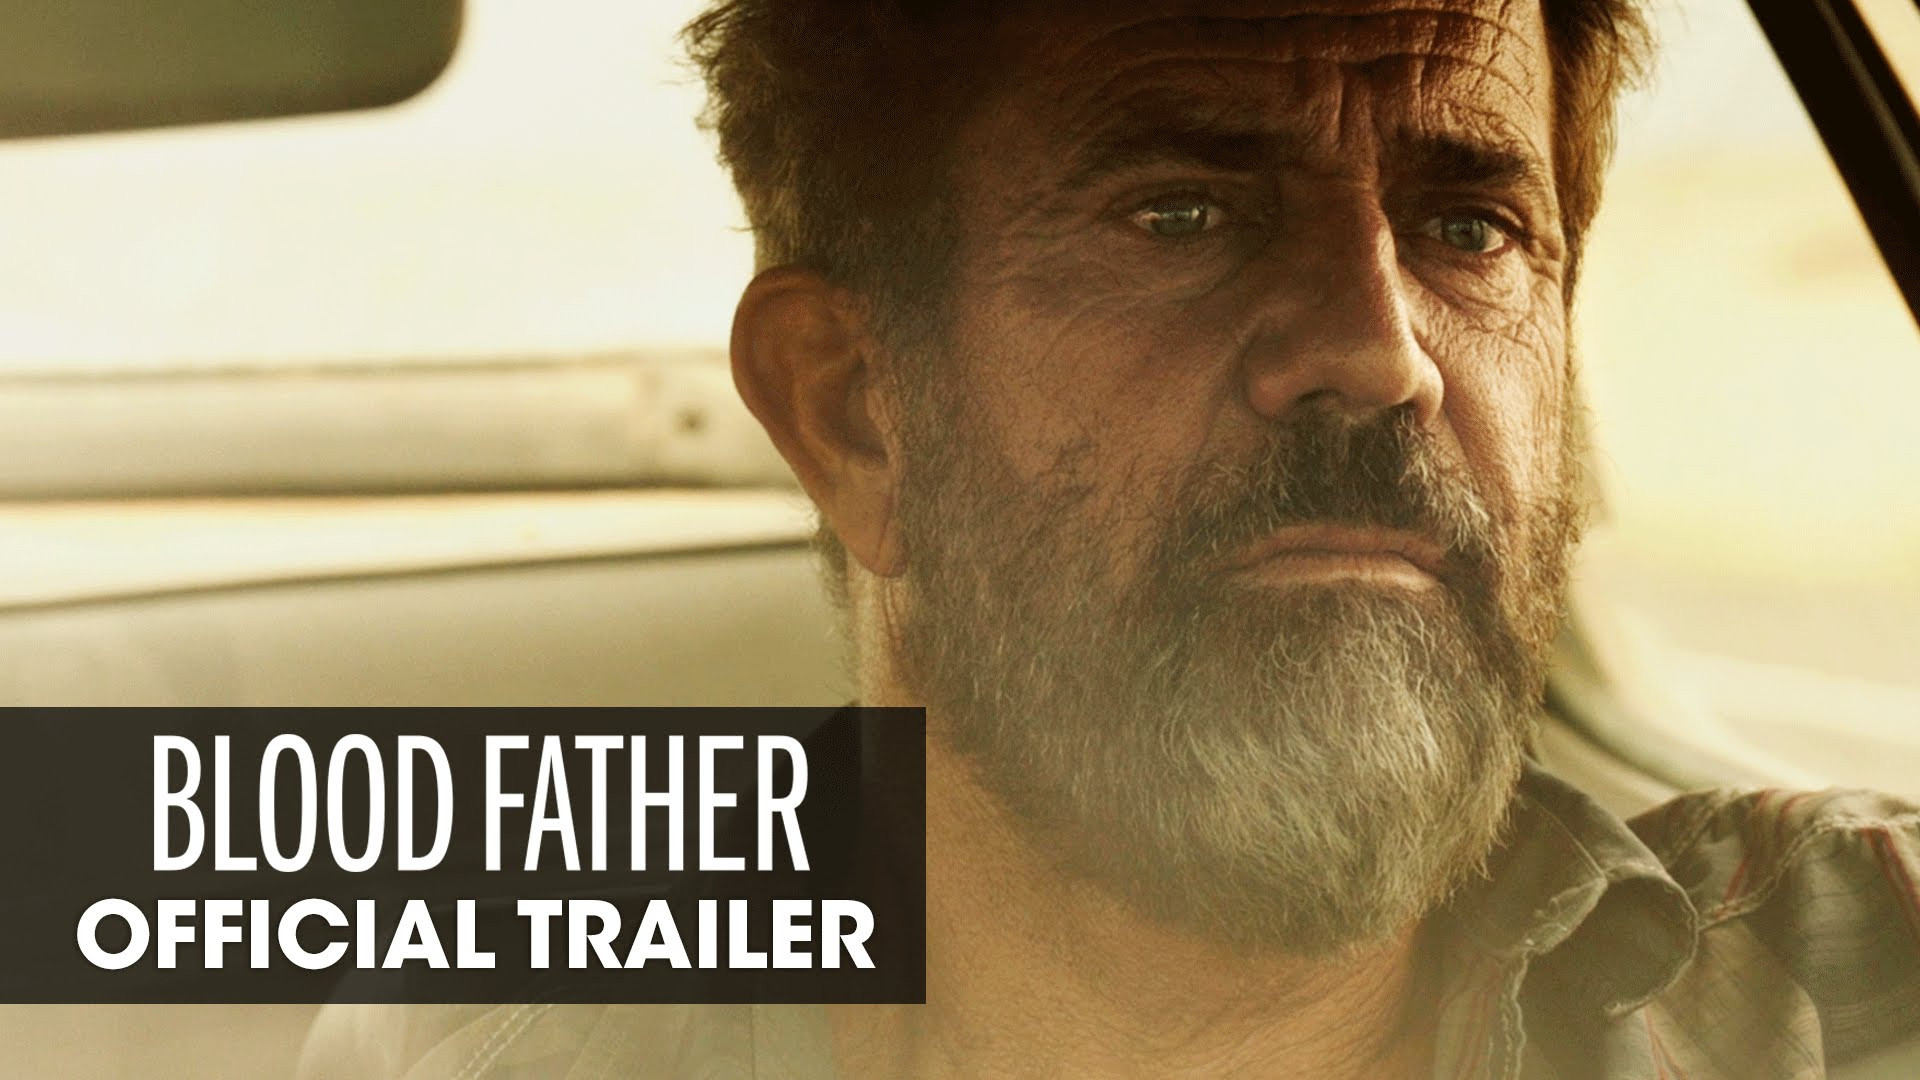 Trailer: Mel Gibson in BLOOD FATHER